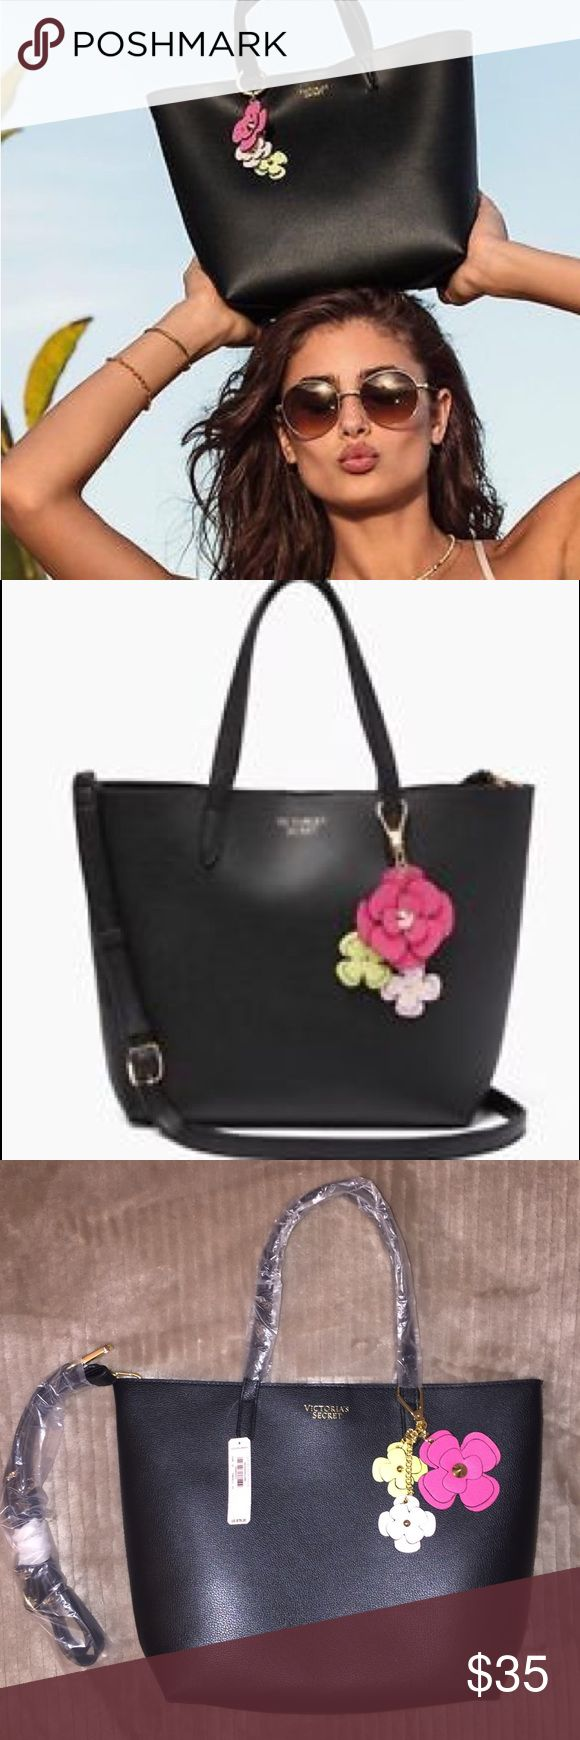 "NWT Victoria Secrets Tease Floral Tote Victoria's Secret tease floral tote bag purse handbag Black bag with floral keychain. 2 shoulder straps and one long adjustable strap. 13.5"" L x 3.75"" W x 9.25"" H. PINK Victoria's Secret Bags Totes"